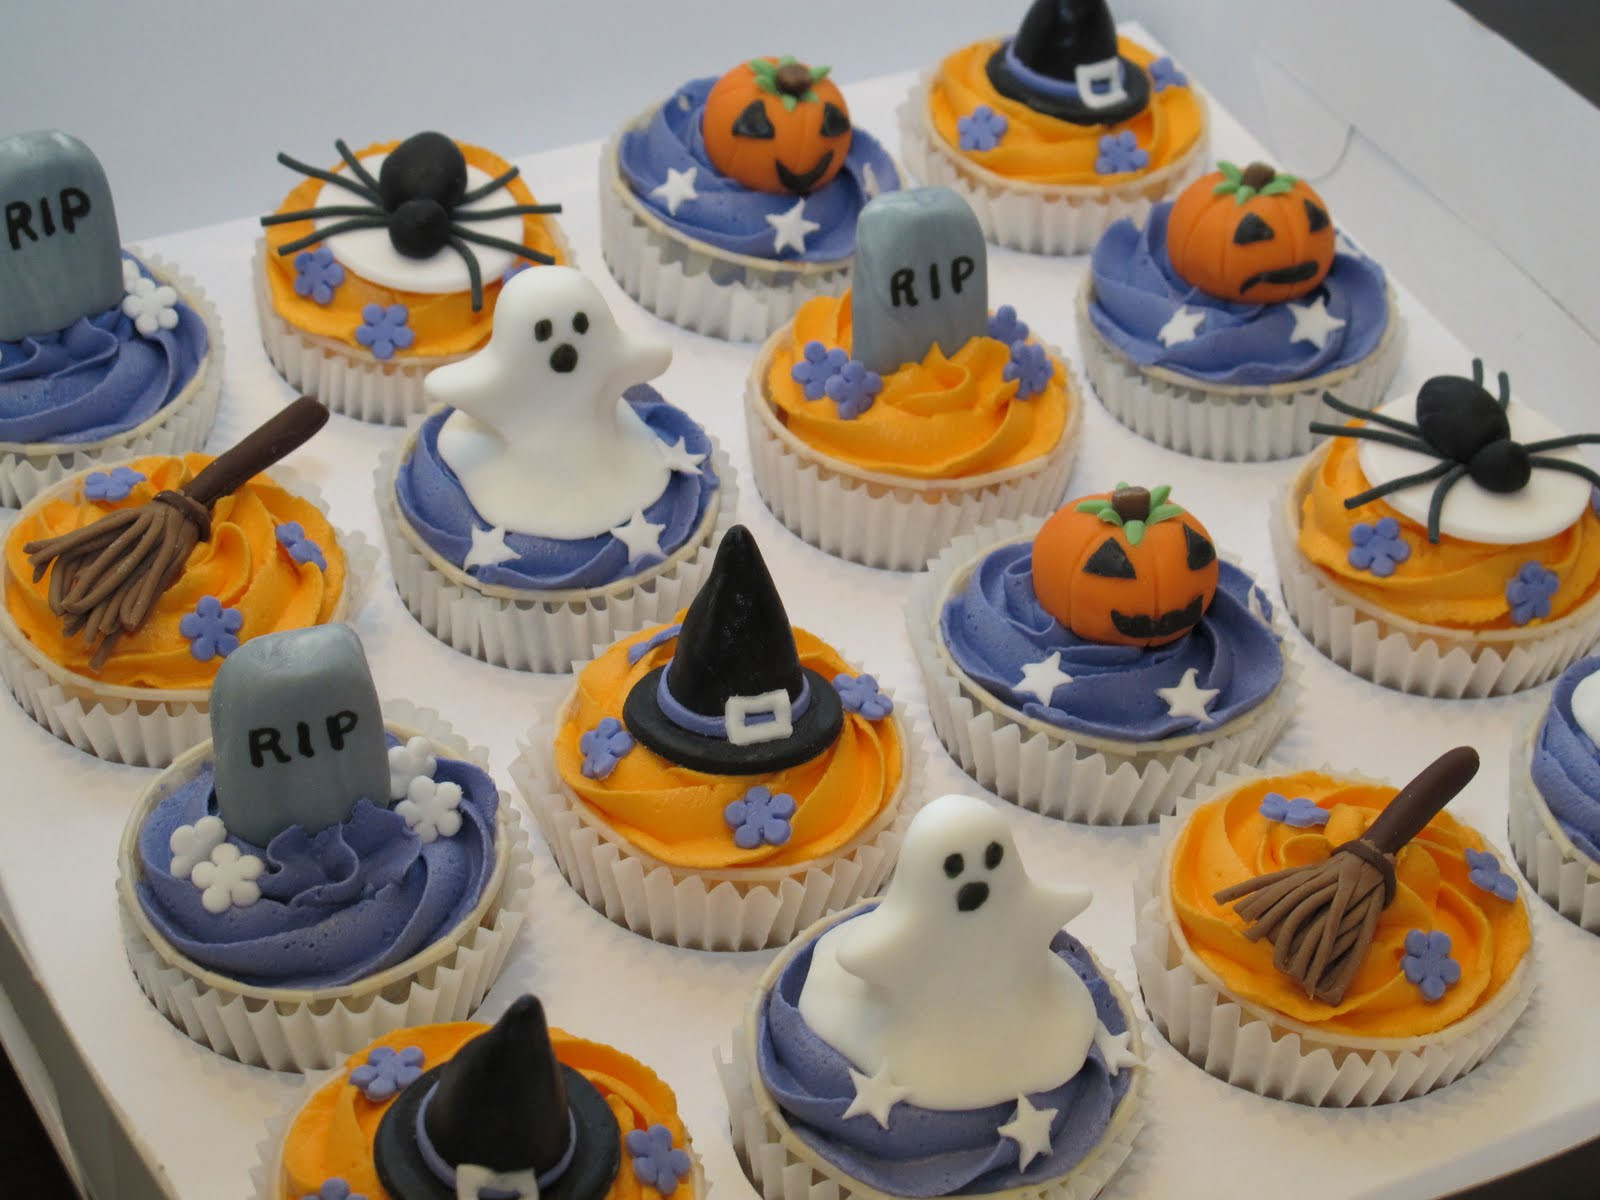 Halloween Cupcakes Decorations  Pink Oven Cakes and Cookies Halloween cupcake ideas